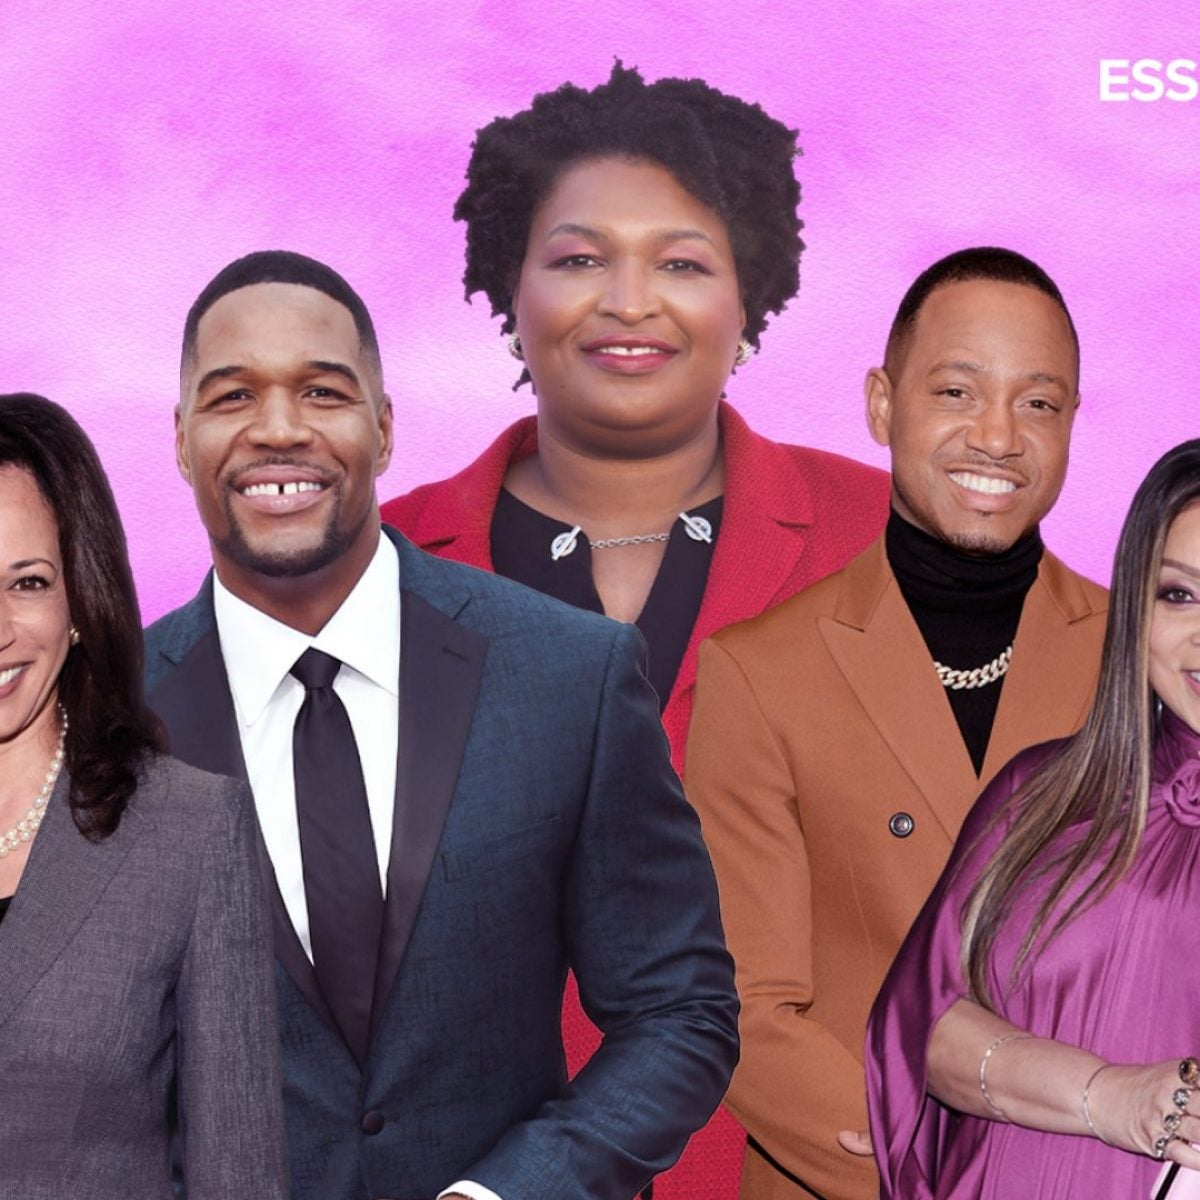 HBCU Love: ESSENCE CEO To Receive Honorary Doctorate From Texas College